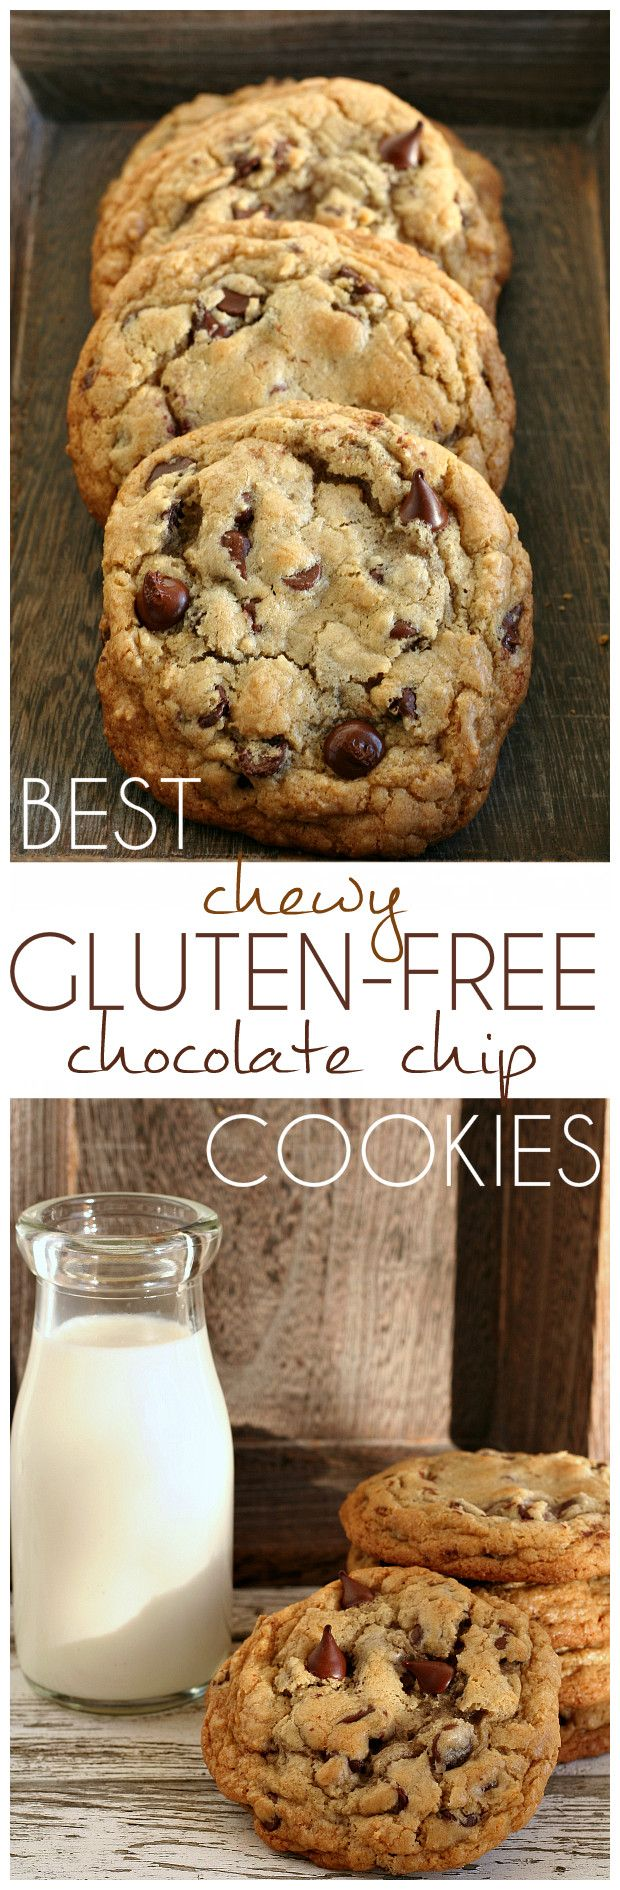 The Best Chewy Gluten-free Chocolate Chip Cookies Best Chewy Gluten-Free Chocolate Chip Cookies Recipe- Amazing cookies with chewy edges and gooey centers!!!